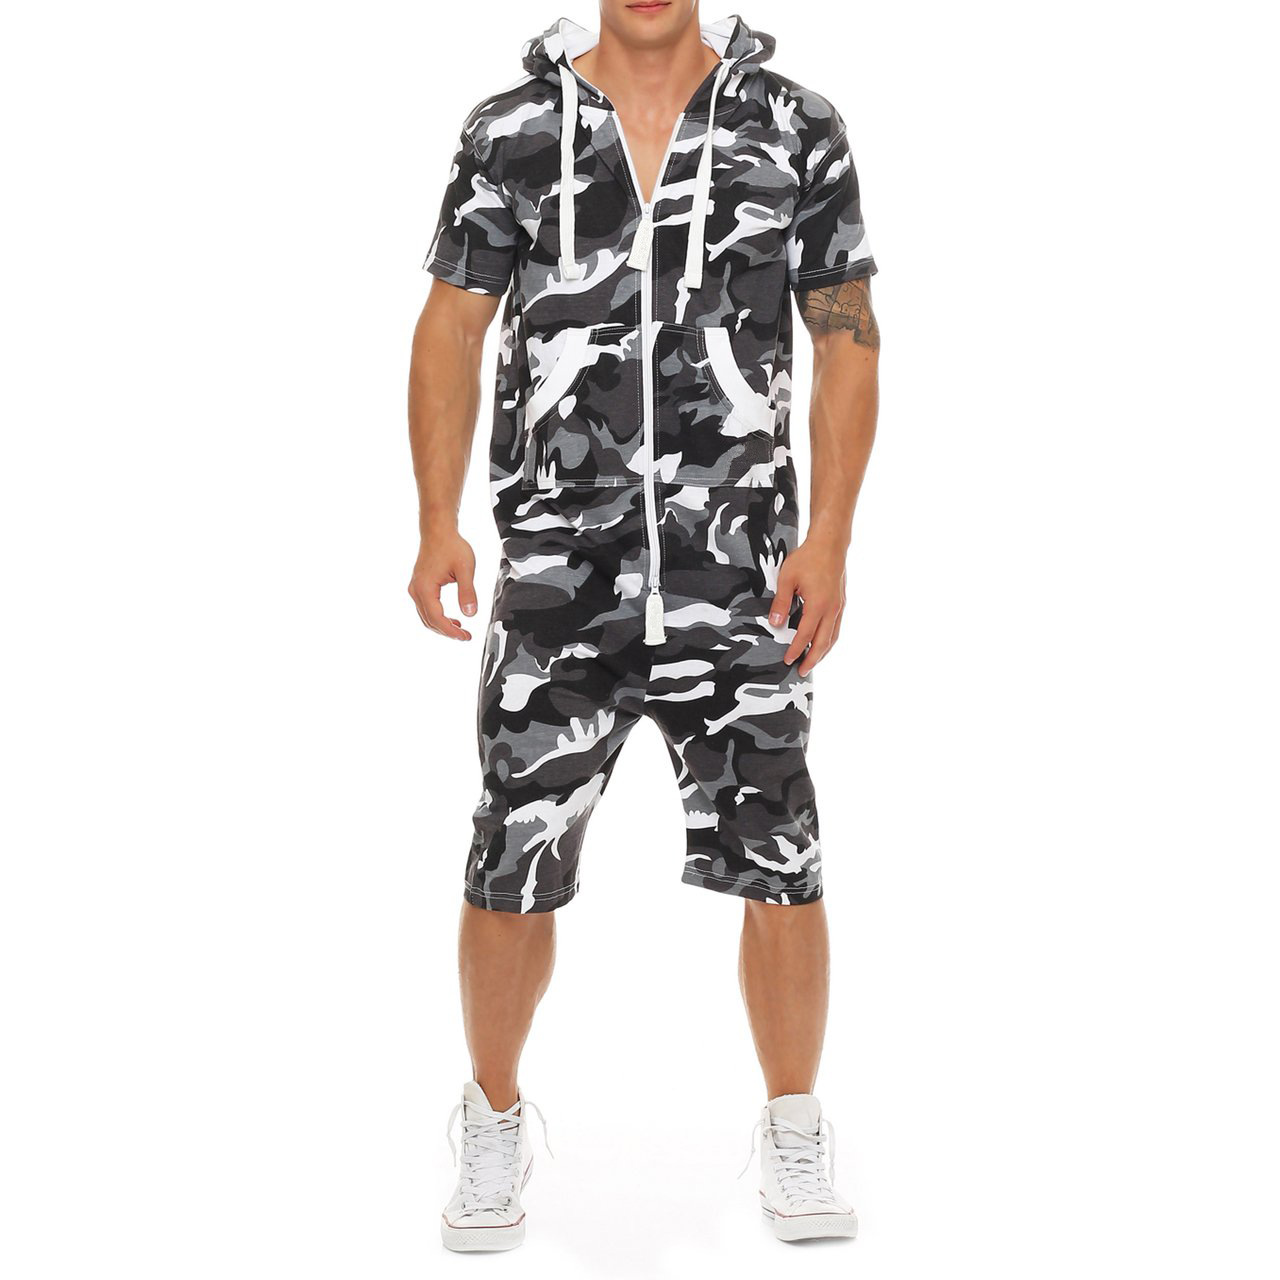 Solid Colour And Camouflage Men's Jumpsuit Casual Hooded Zipper Short Sleeve Top And Knee Length Shorts 2 Piece Set Ropa Hombre